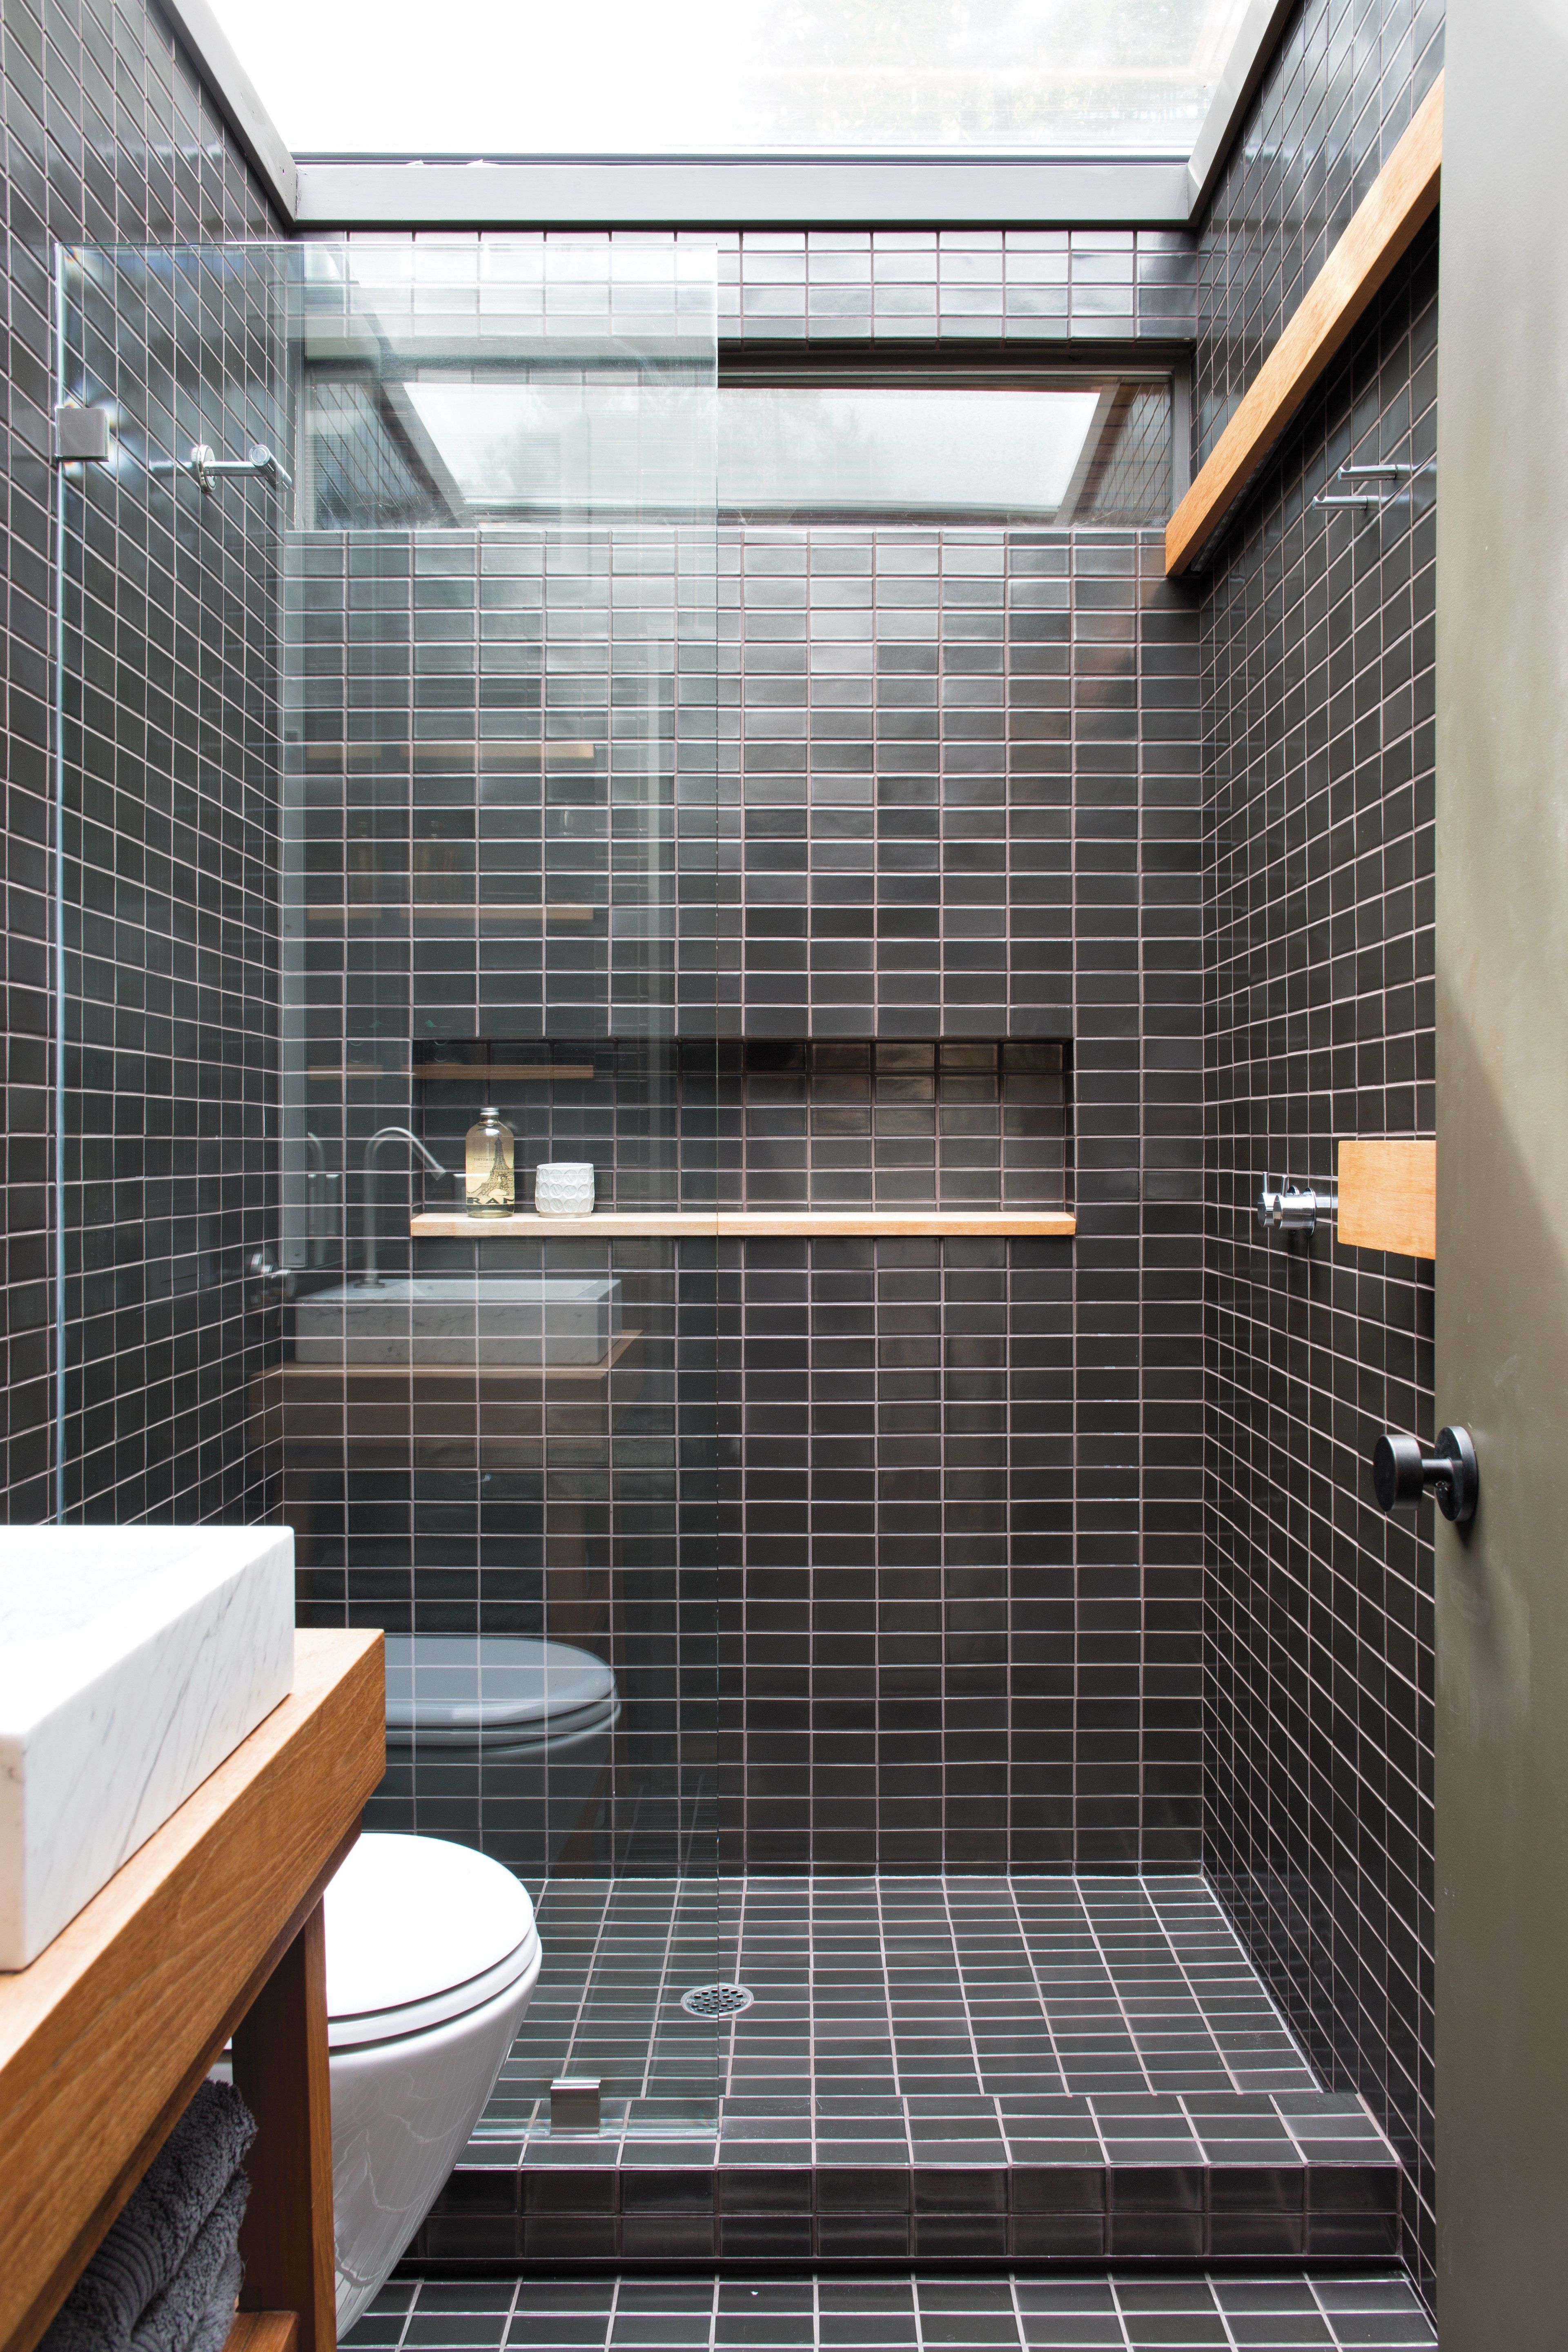 How to create the bathroom tile design of your dreams heath how to create the bathroom tile design of your dreams dailygadgetfo Images